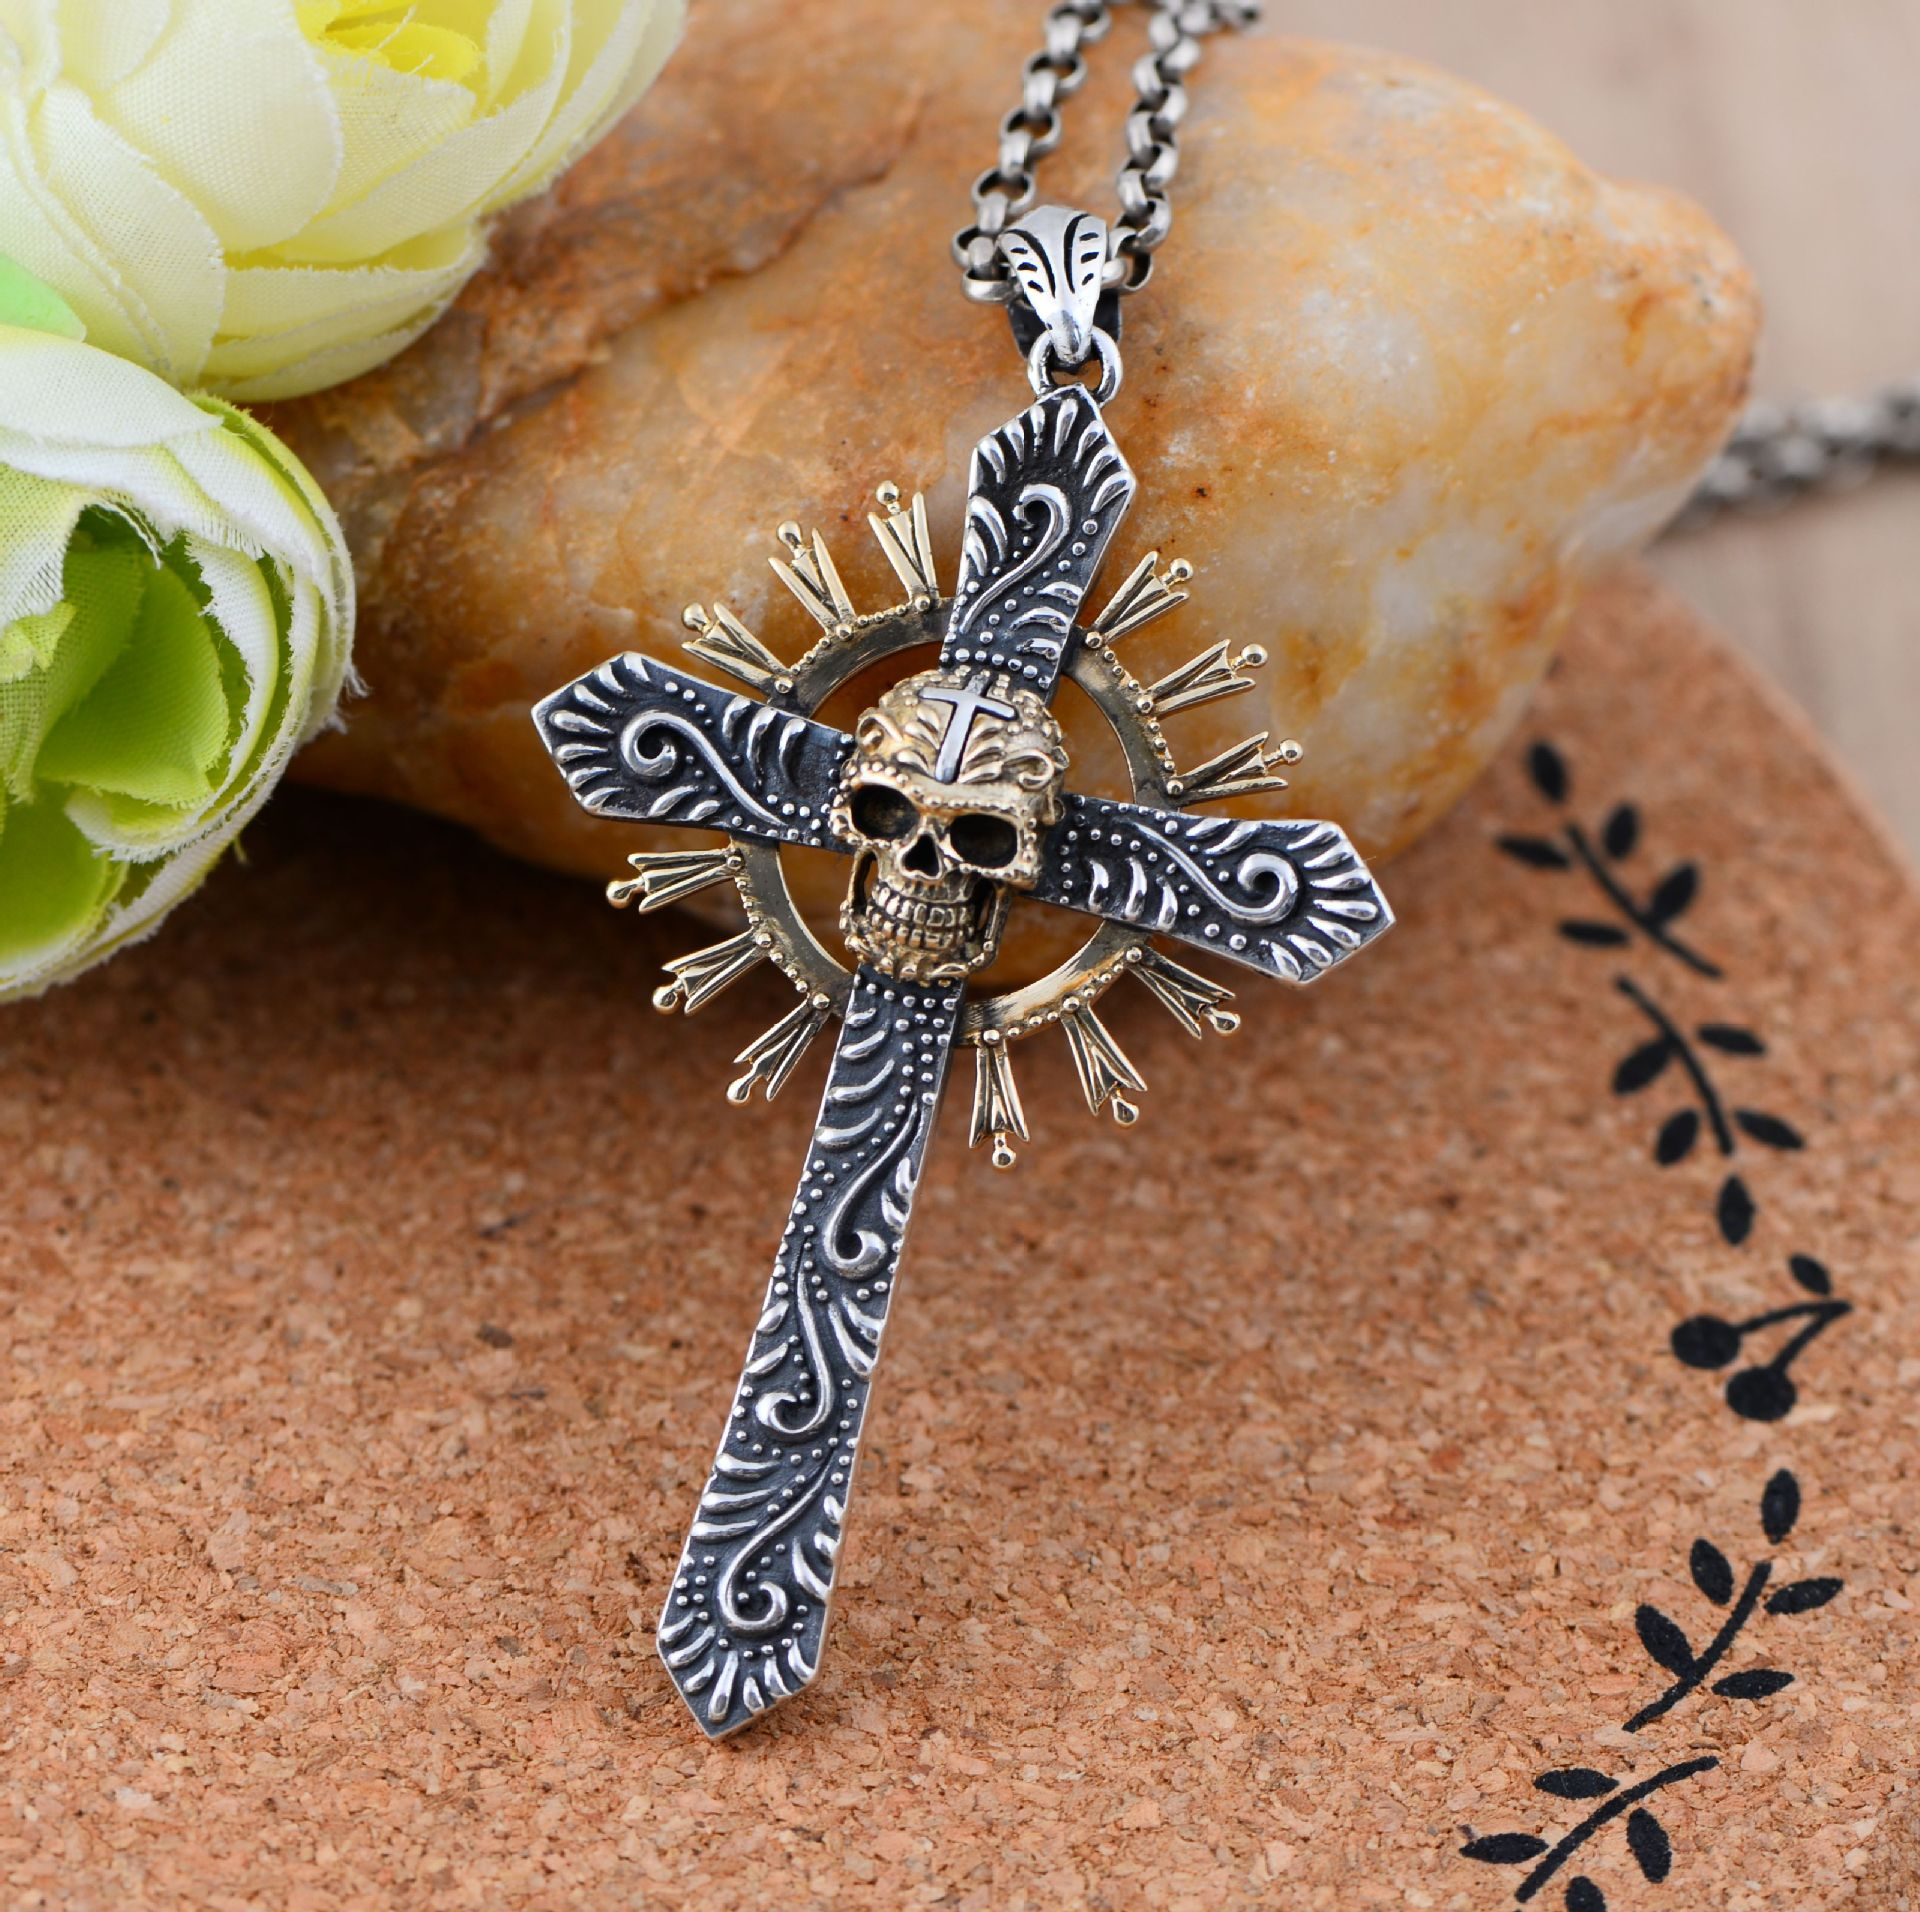 Black silver jewelry wholesale 925 Sterling Silver Thailand import Cross Skull Pendant 046730w men's personality 2 pairs frame 2 pairs filter invisible pollen allergy nose filter pm2 5 dust n95 breathable stealth nasal filter mouth air mask